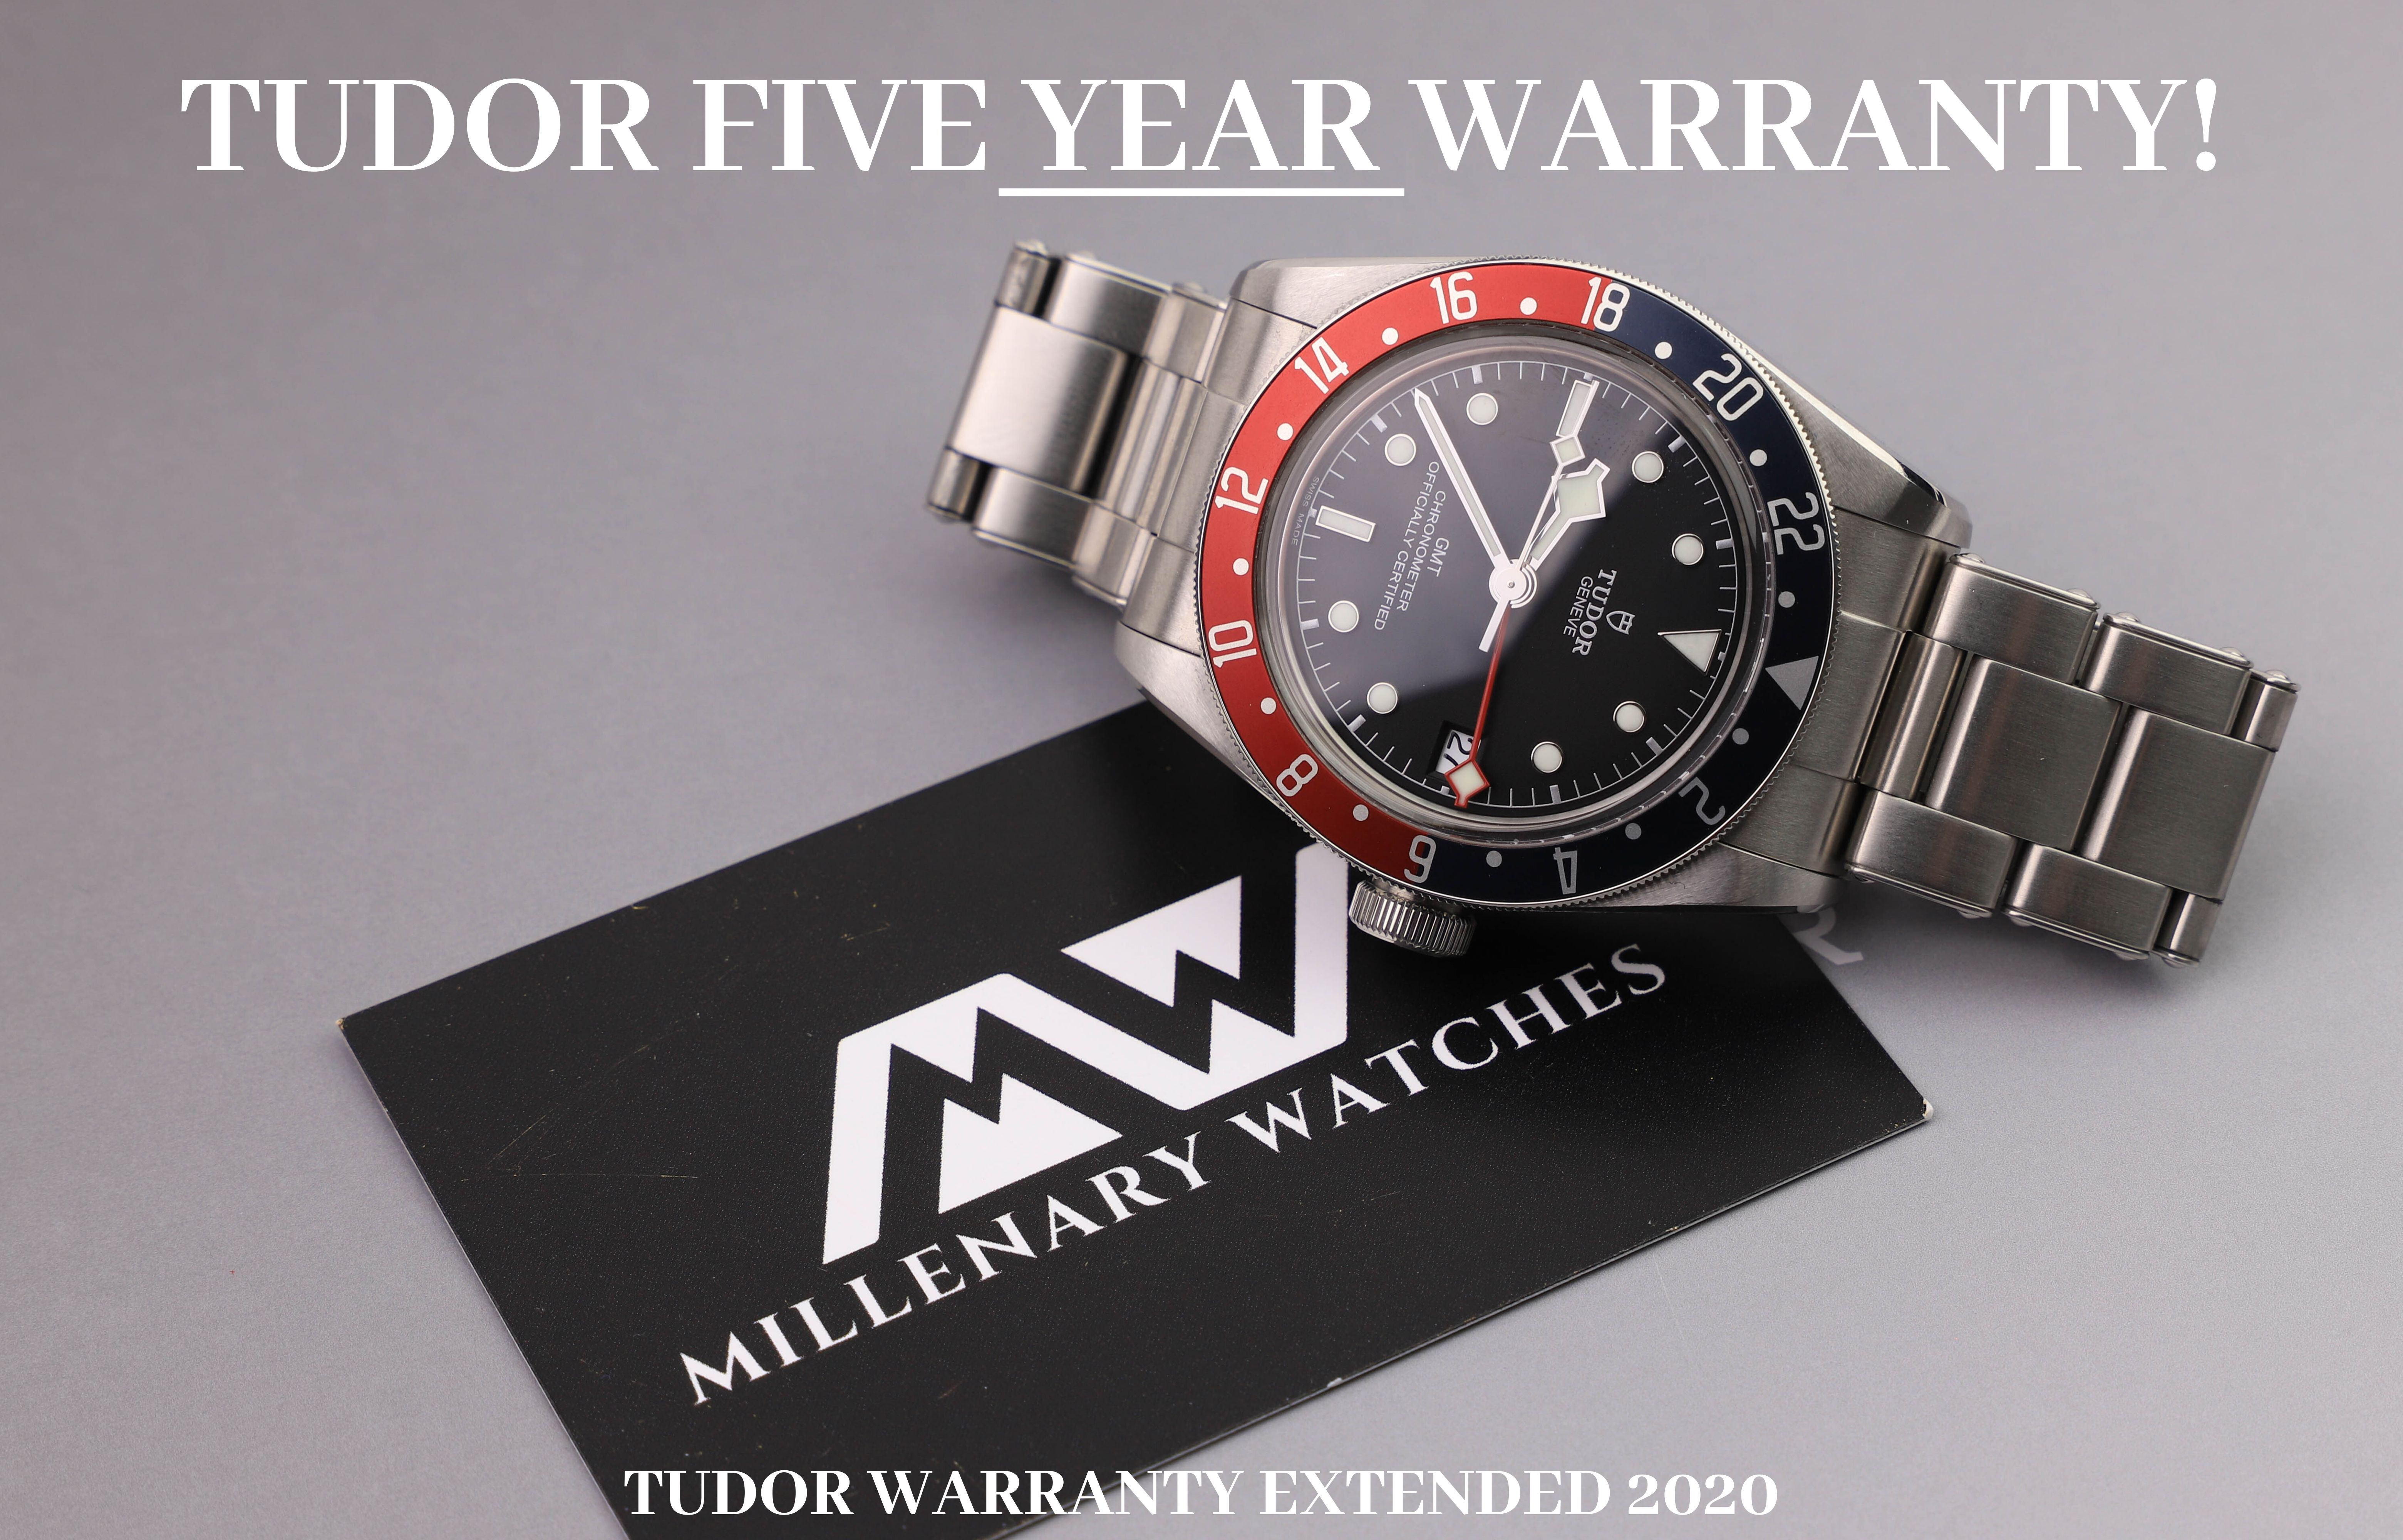 Tudor Five Year Warranty